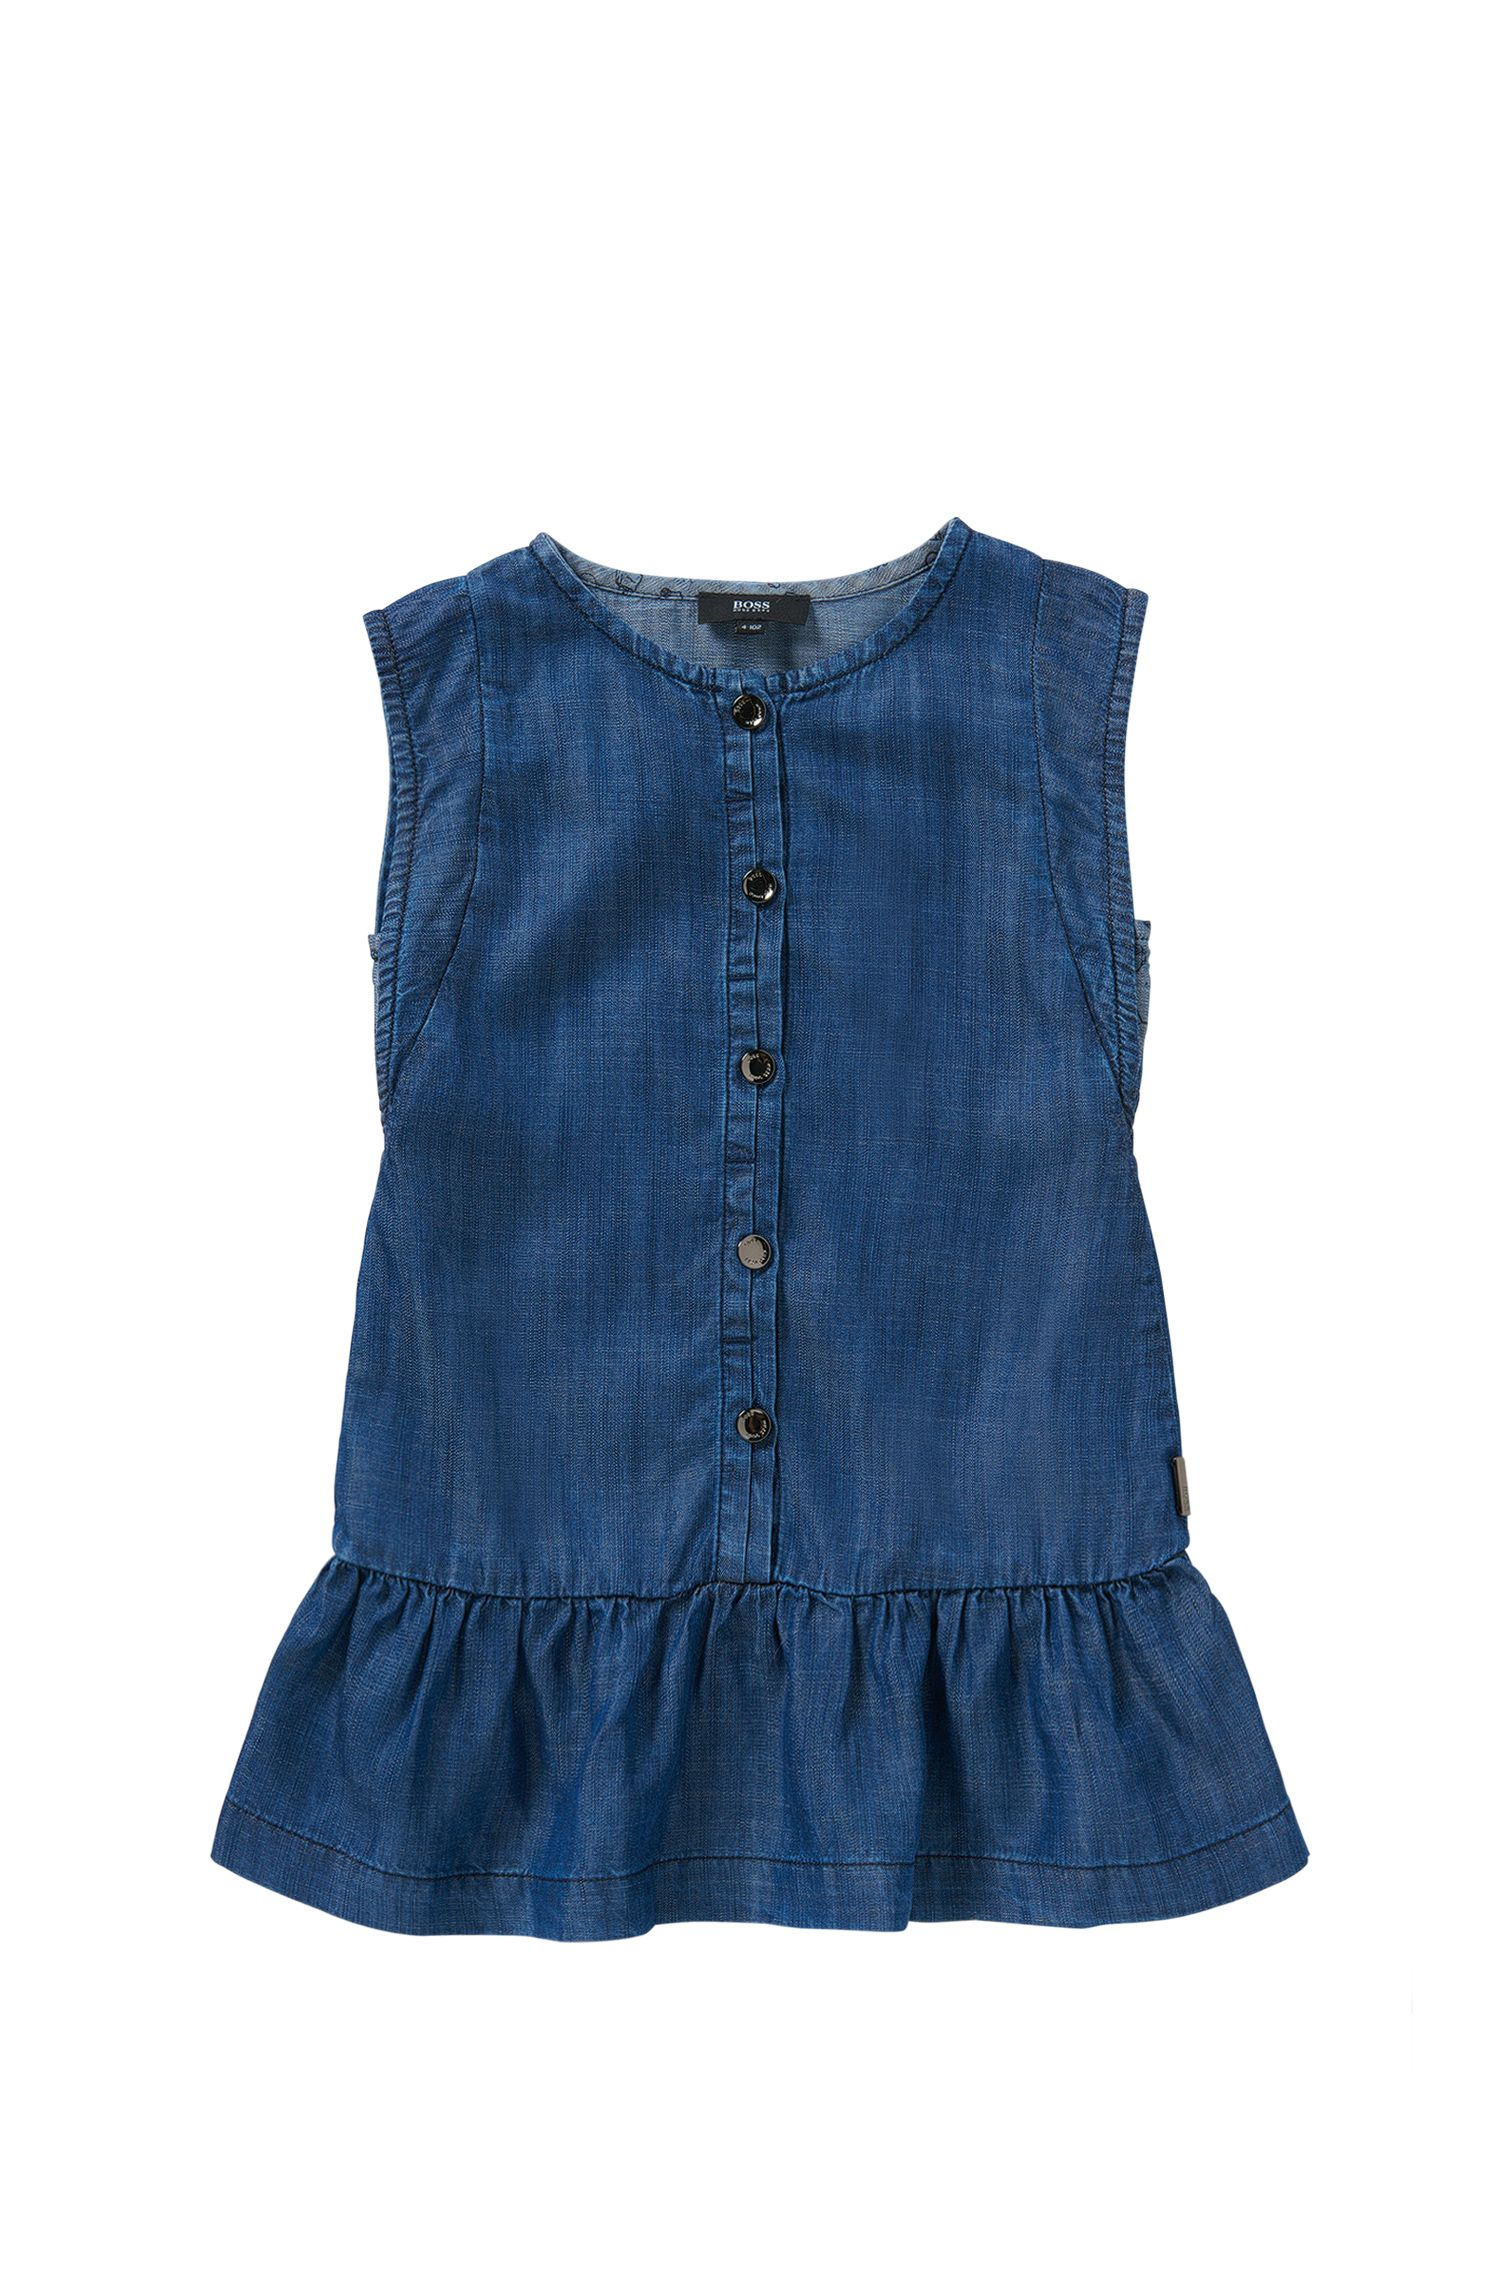 Kinderjurk in een denimlook: 'J12149'